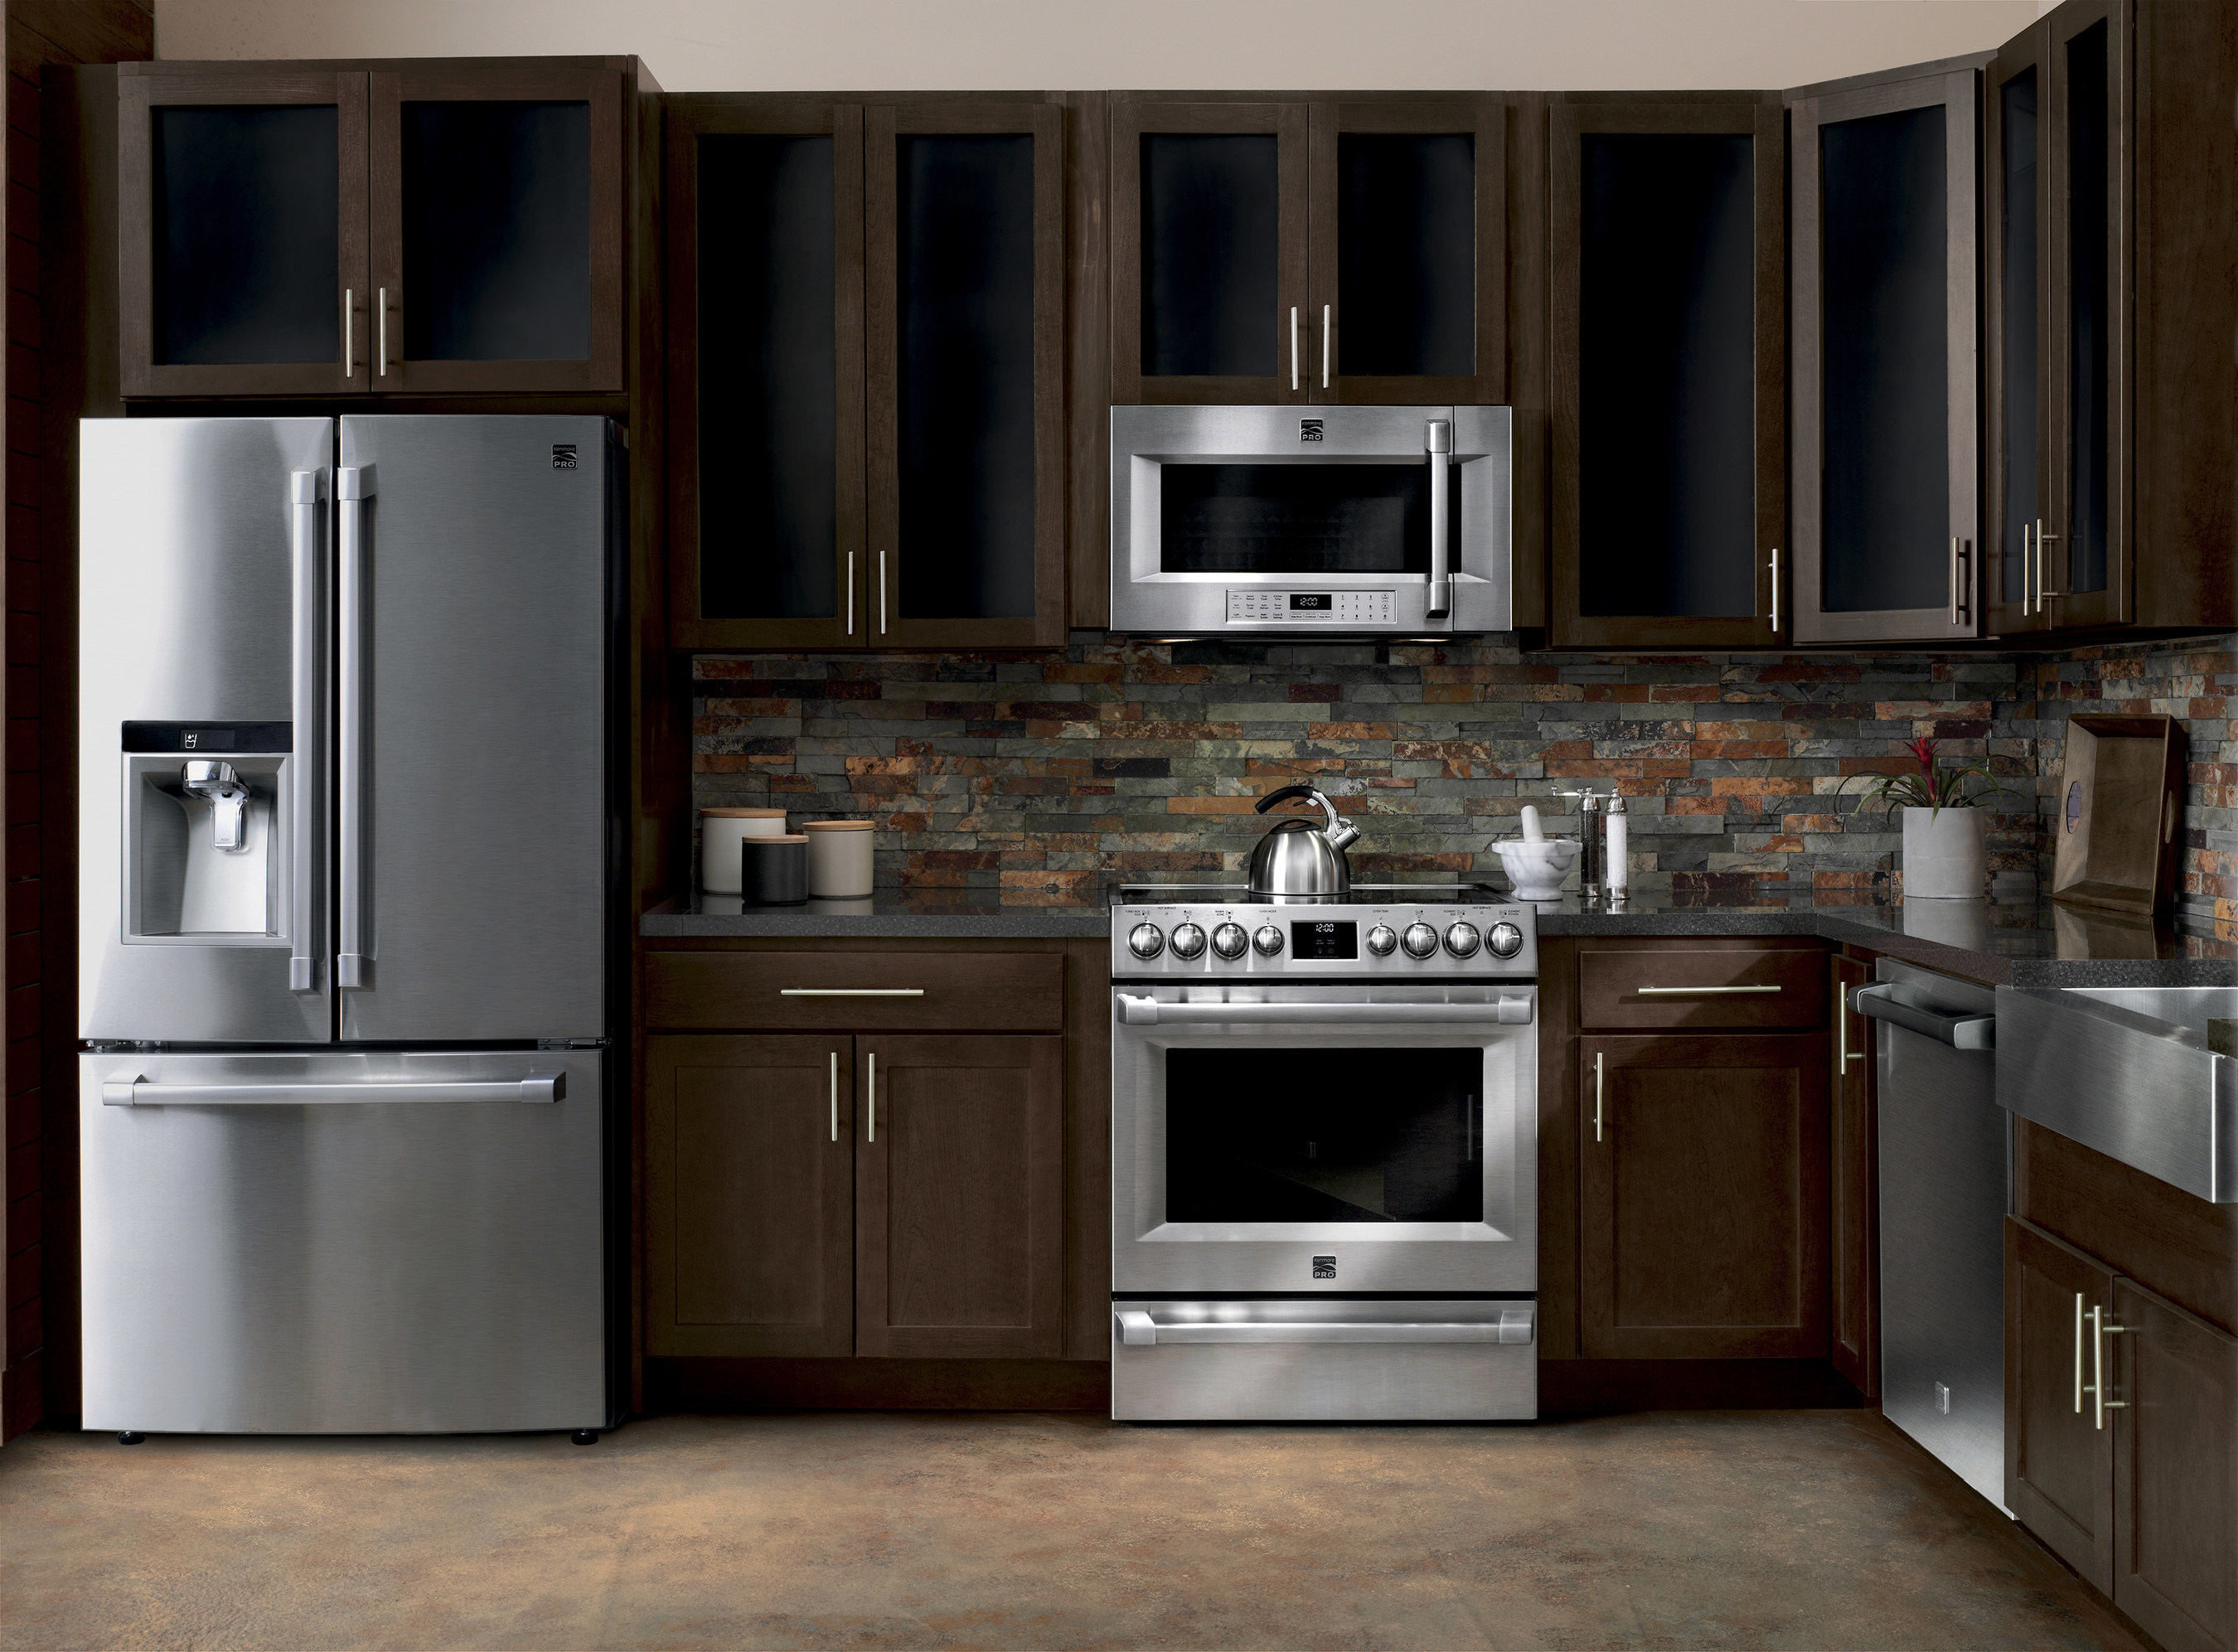 Mixing Appliance Brands In Kitchen